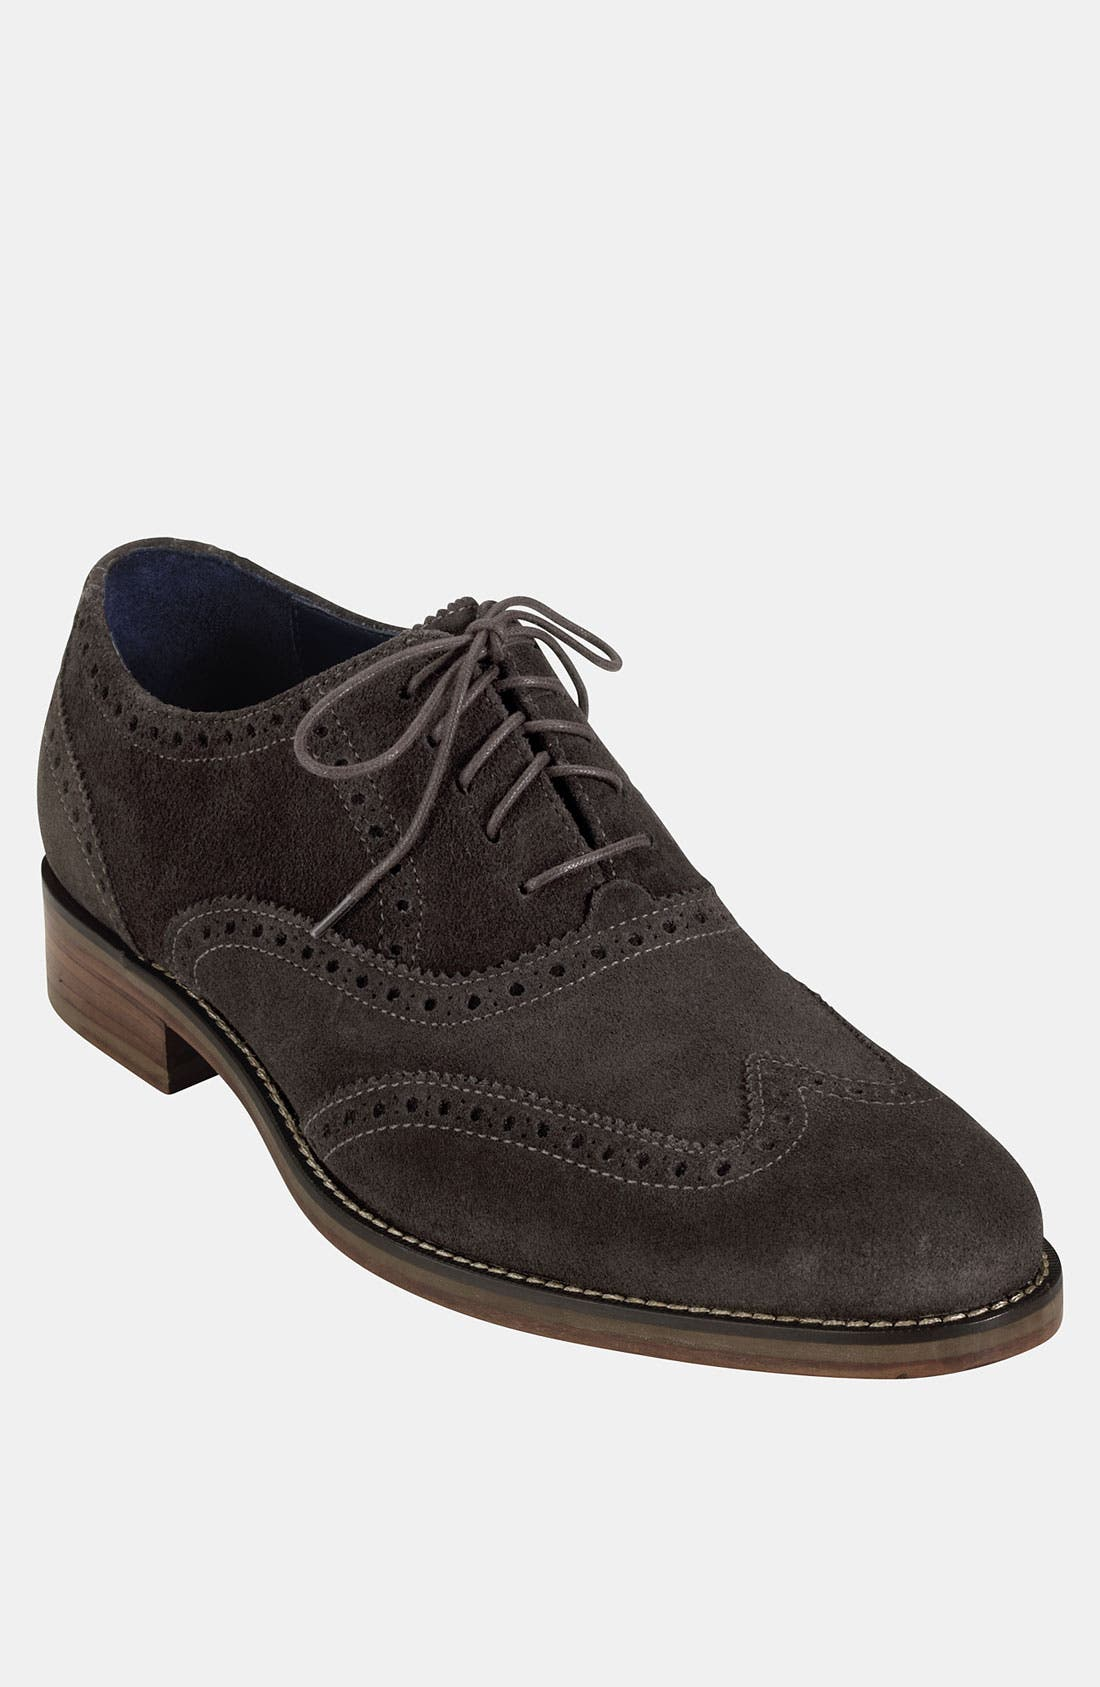 Alternate Image 1 Selected - Cole Haan 'Air Madison' Wingtip